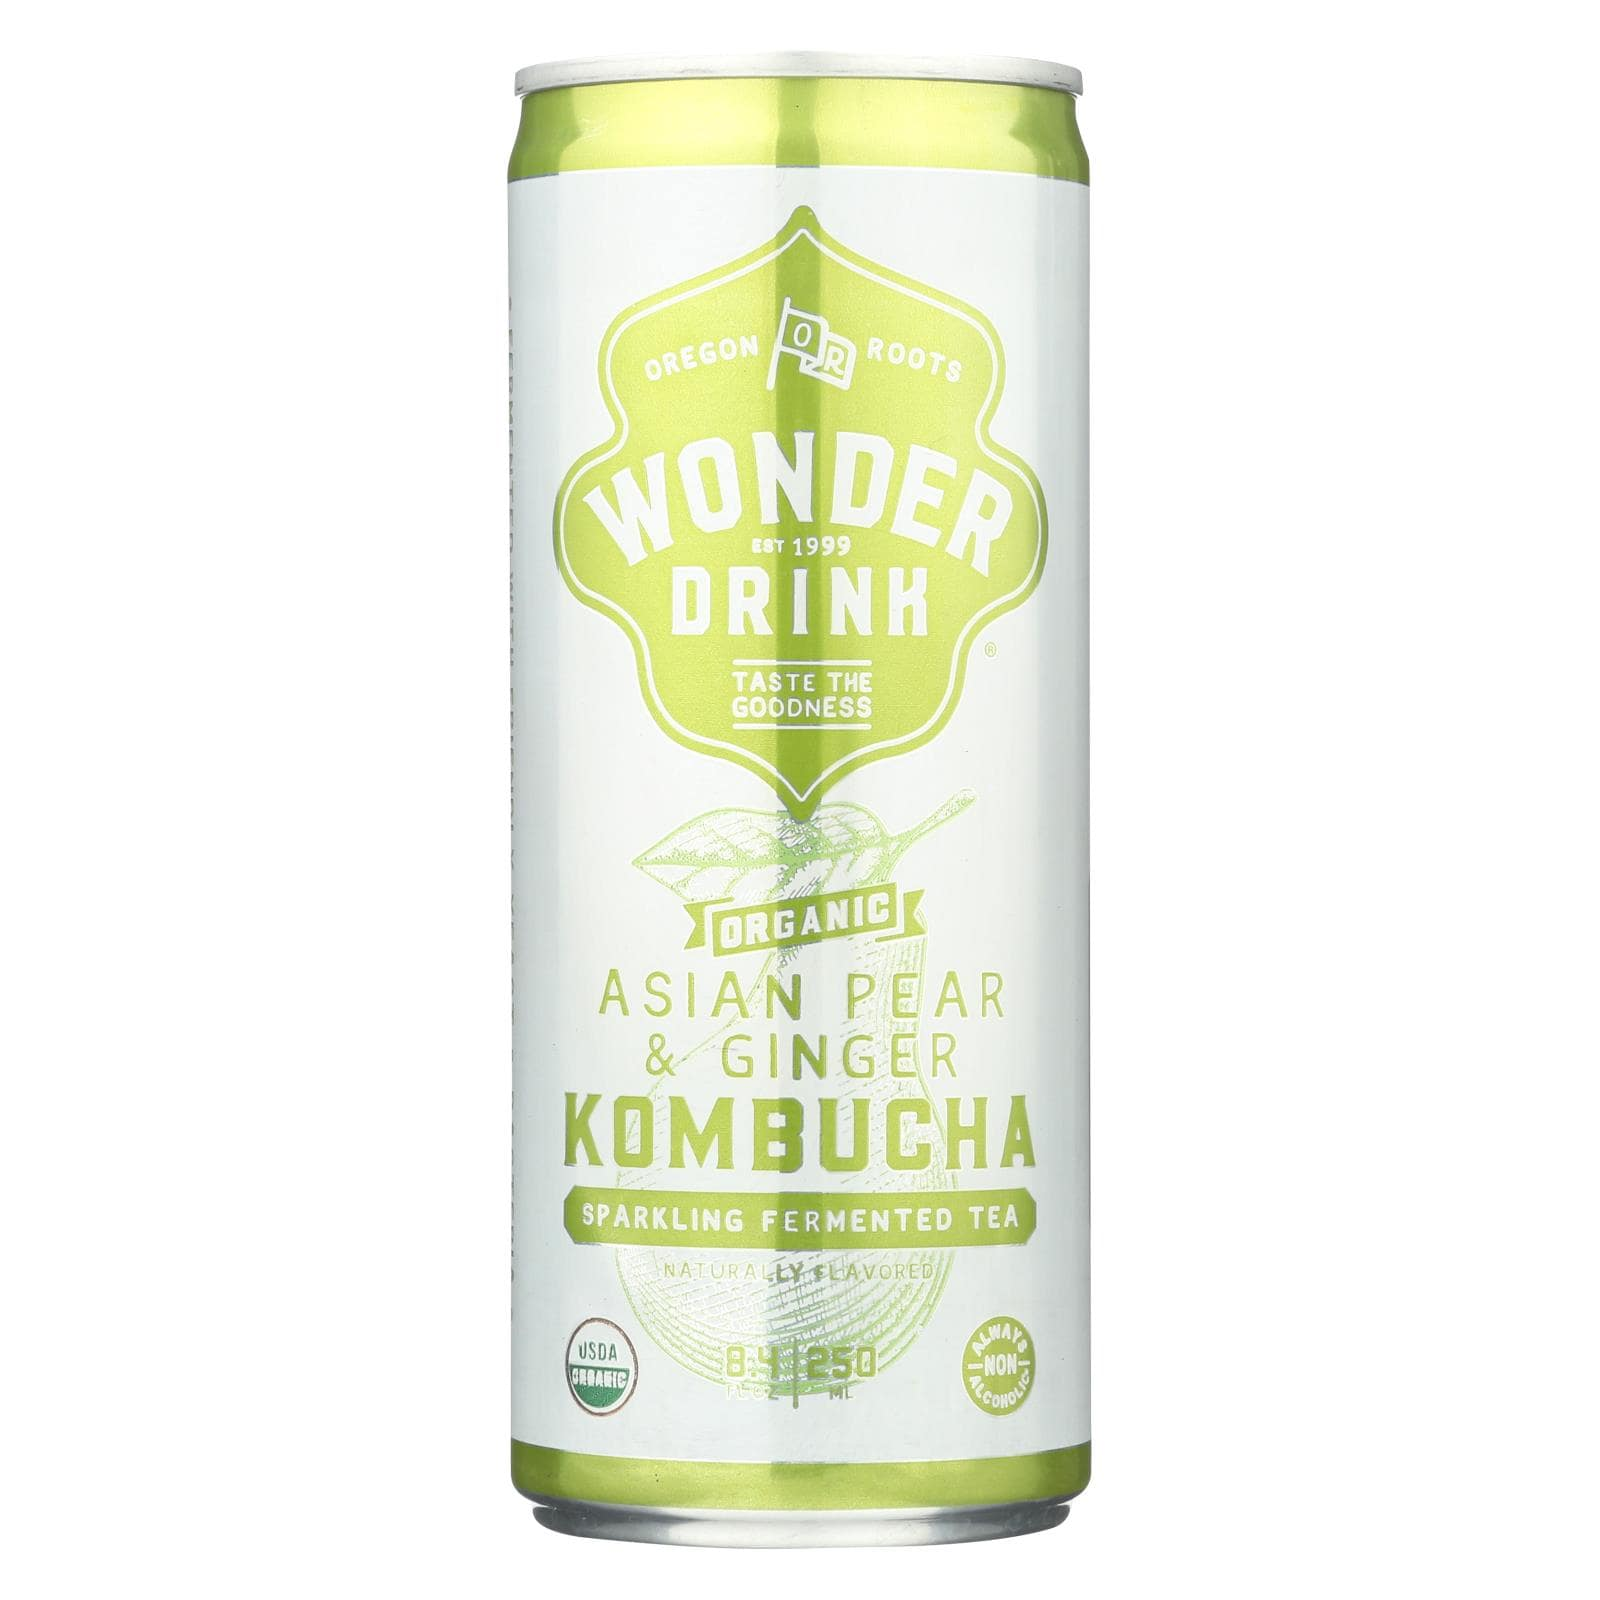 Kombucha Wonder Drink - Asian Pear Ginger